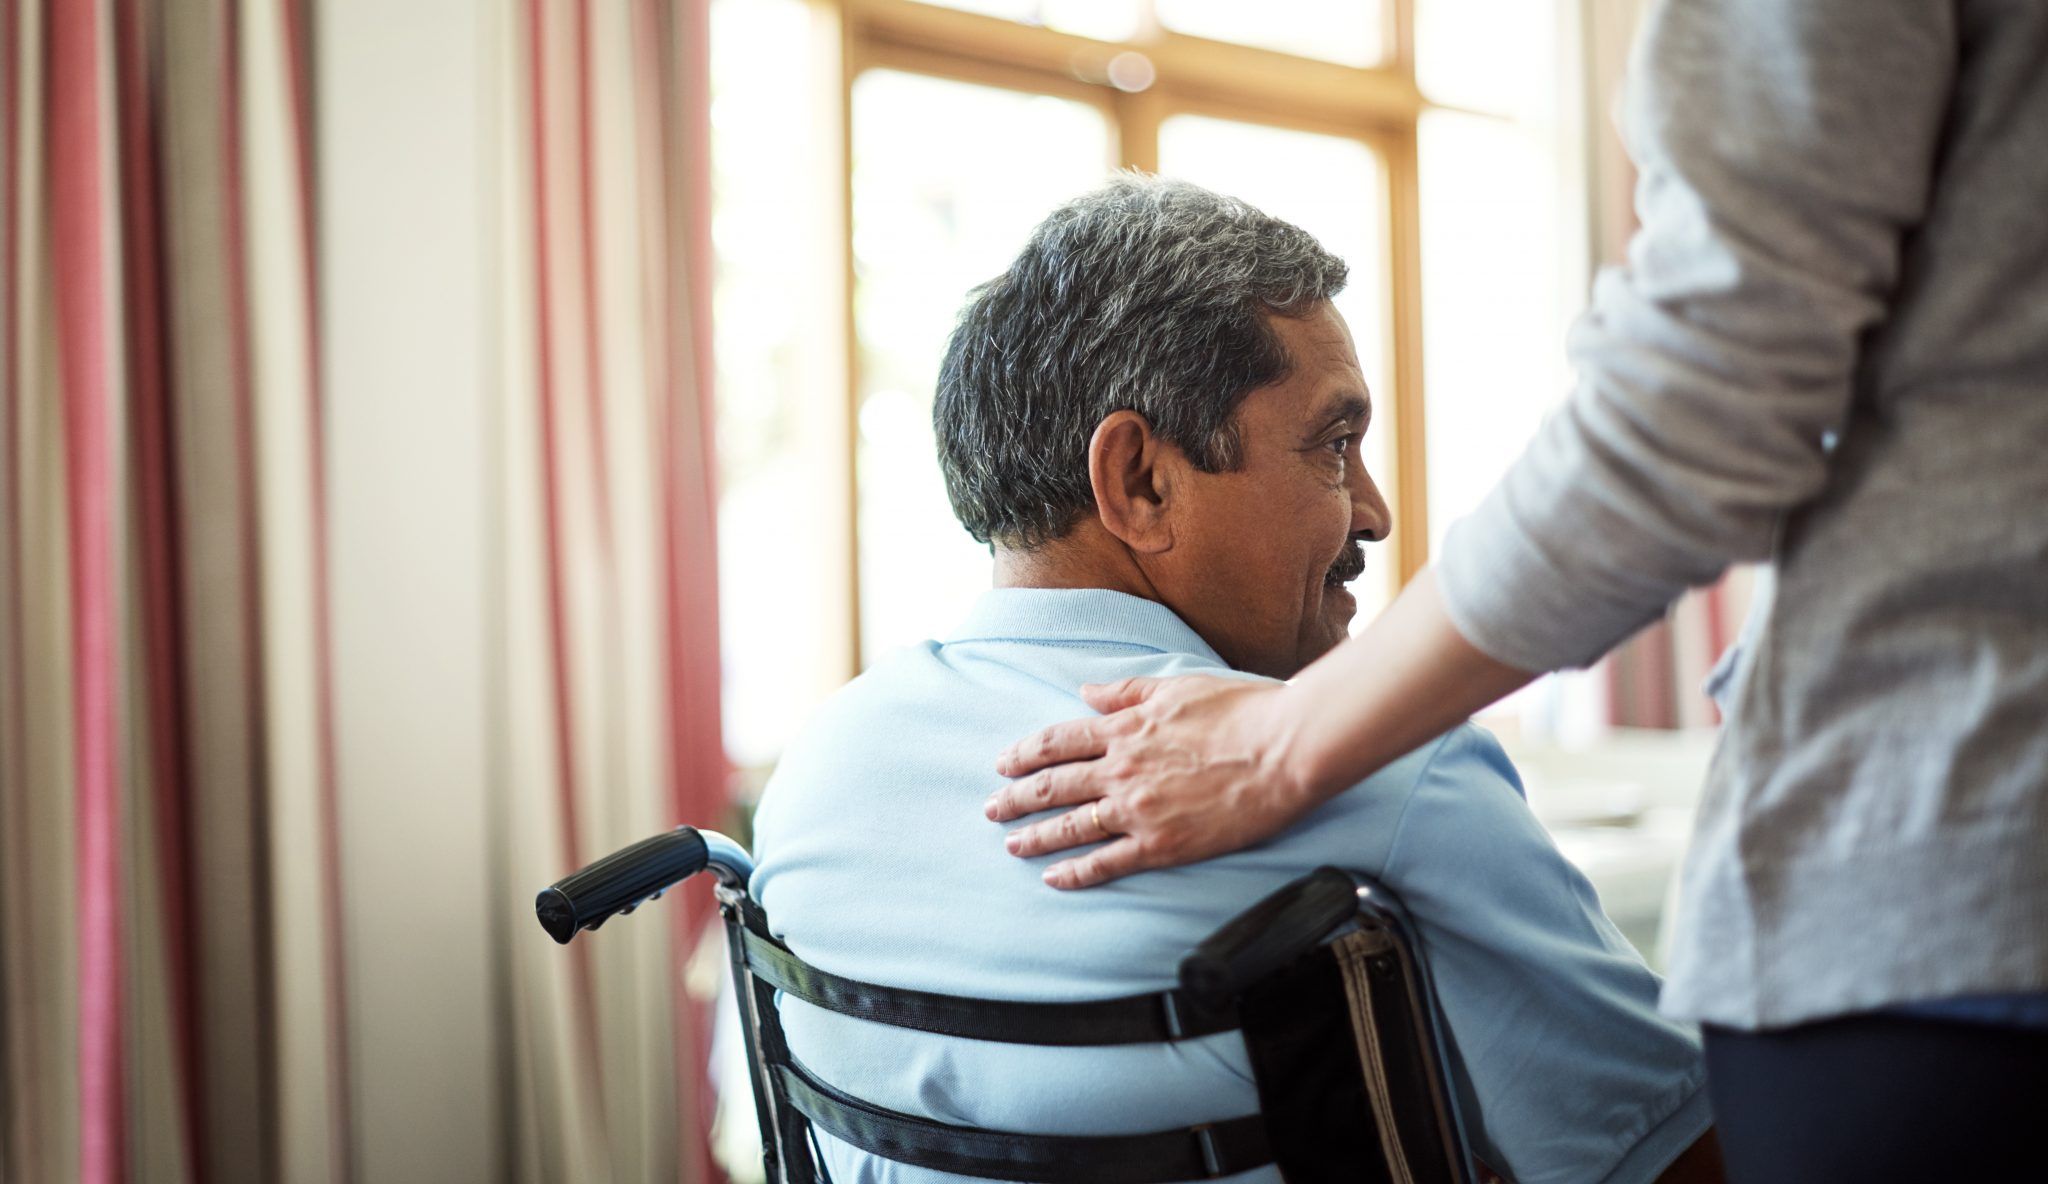 Adult man sitting in a wheelchair with another person's hand gently placed on his shoulder.